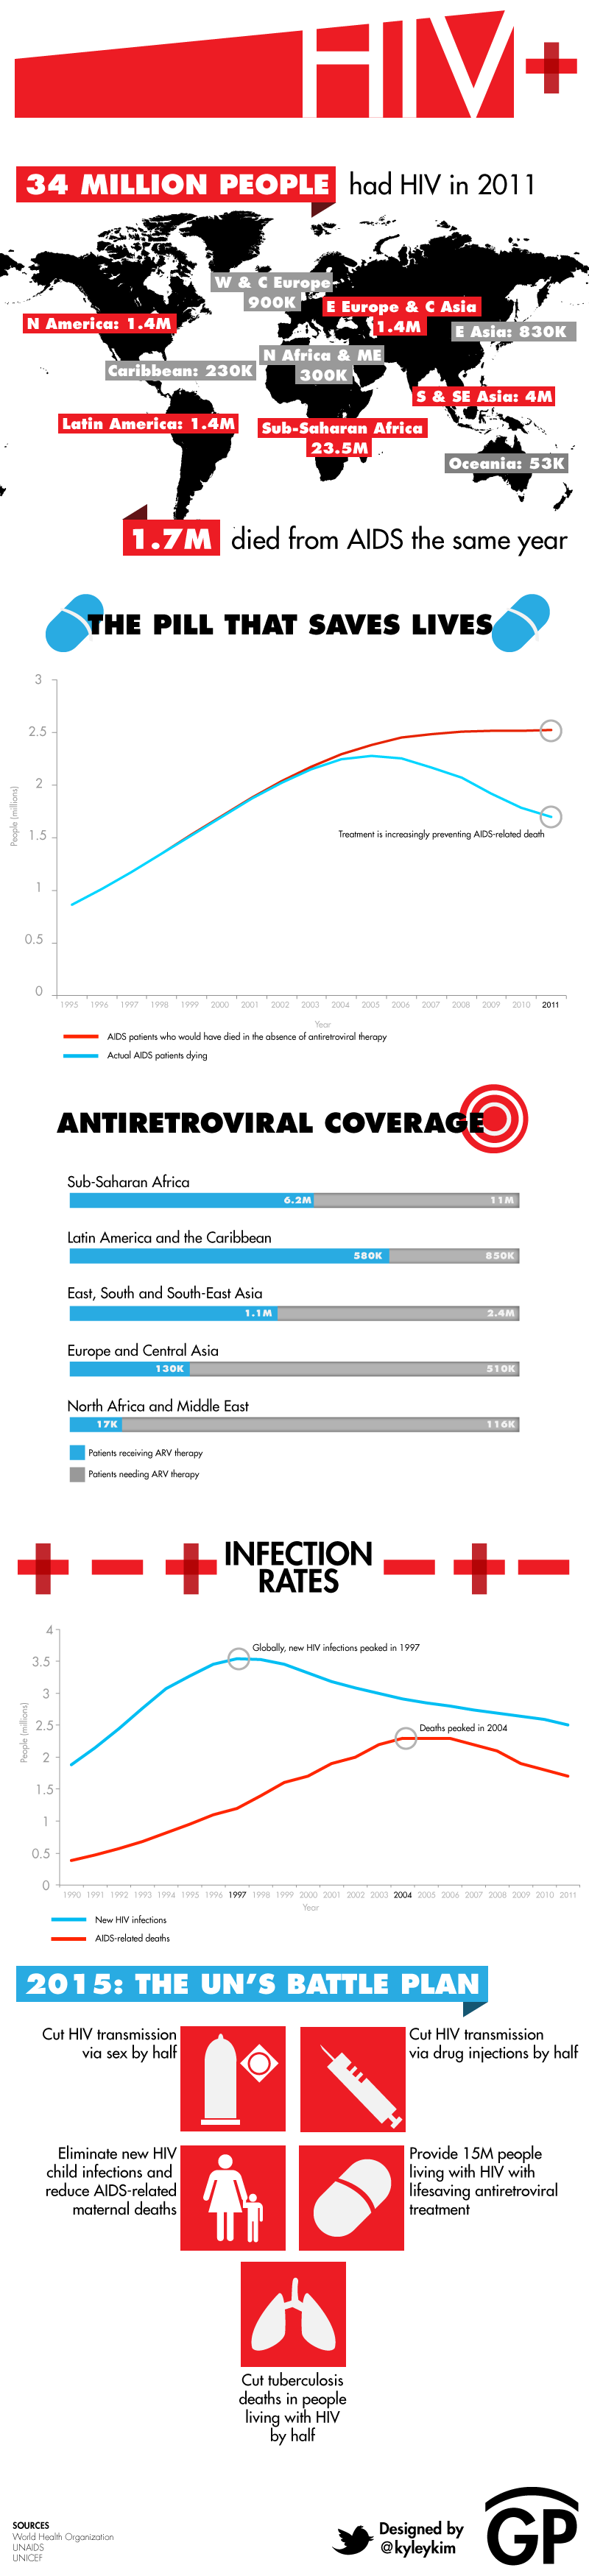 HIV Positive Stats 2011-Infographic